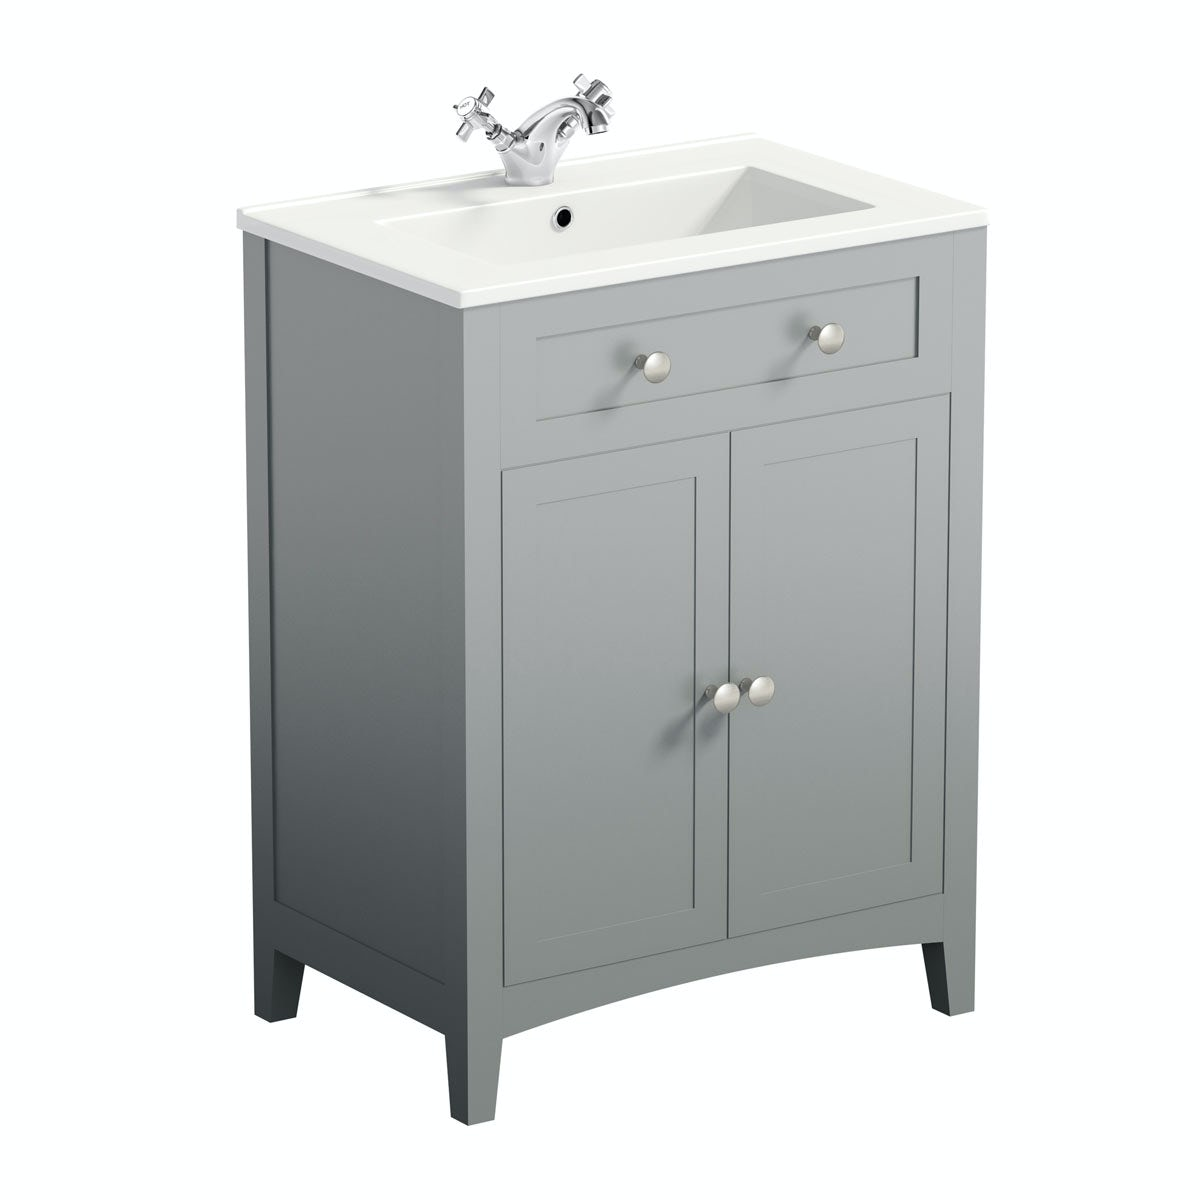 Bathrooms Design Ideas The Bath Co Camberley Grey Vanity Unit With Basin 600mm